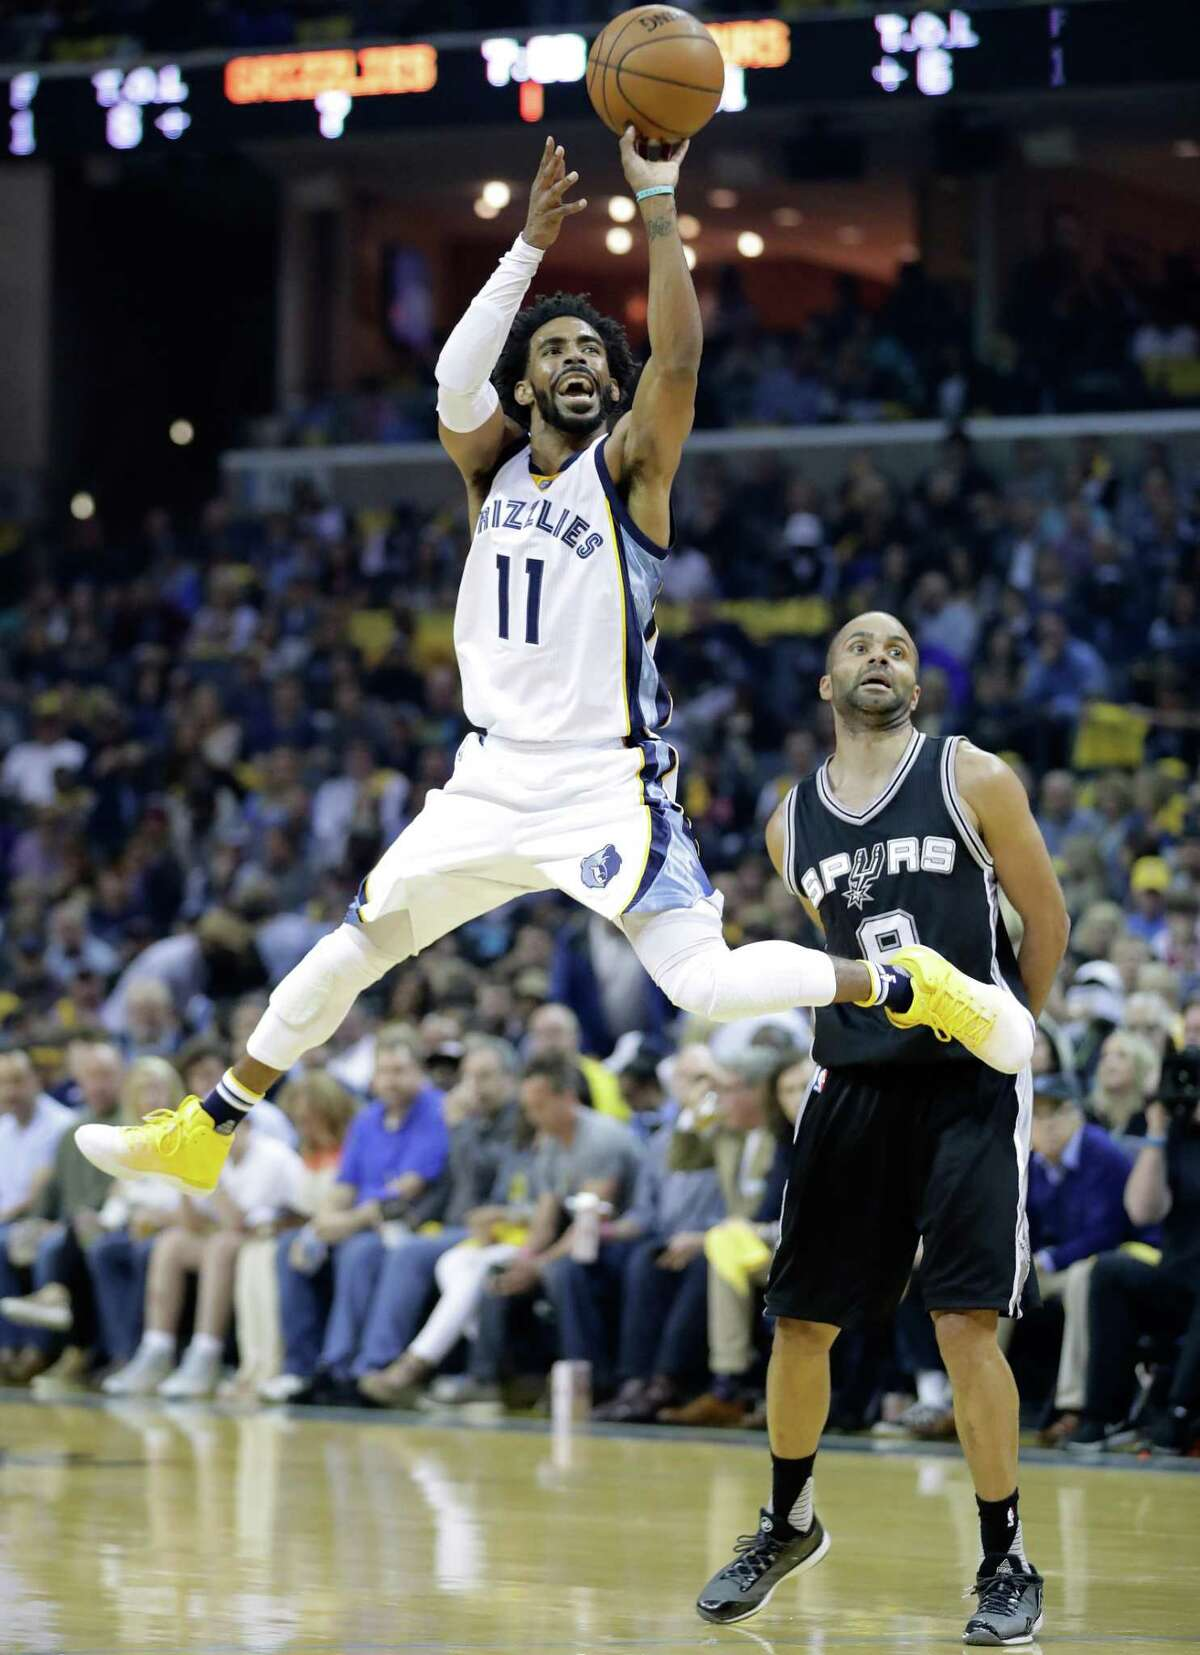 Mike Conley of the Grizzlies shoots the ball against the Spurs' Tony Park in Game 4of the Western Conference quarterfinals at FedEx Forum on April 22, 2017 in Memphis, Tenn.